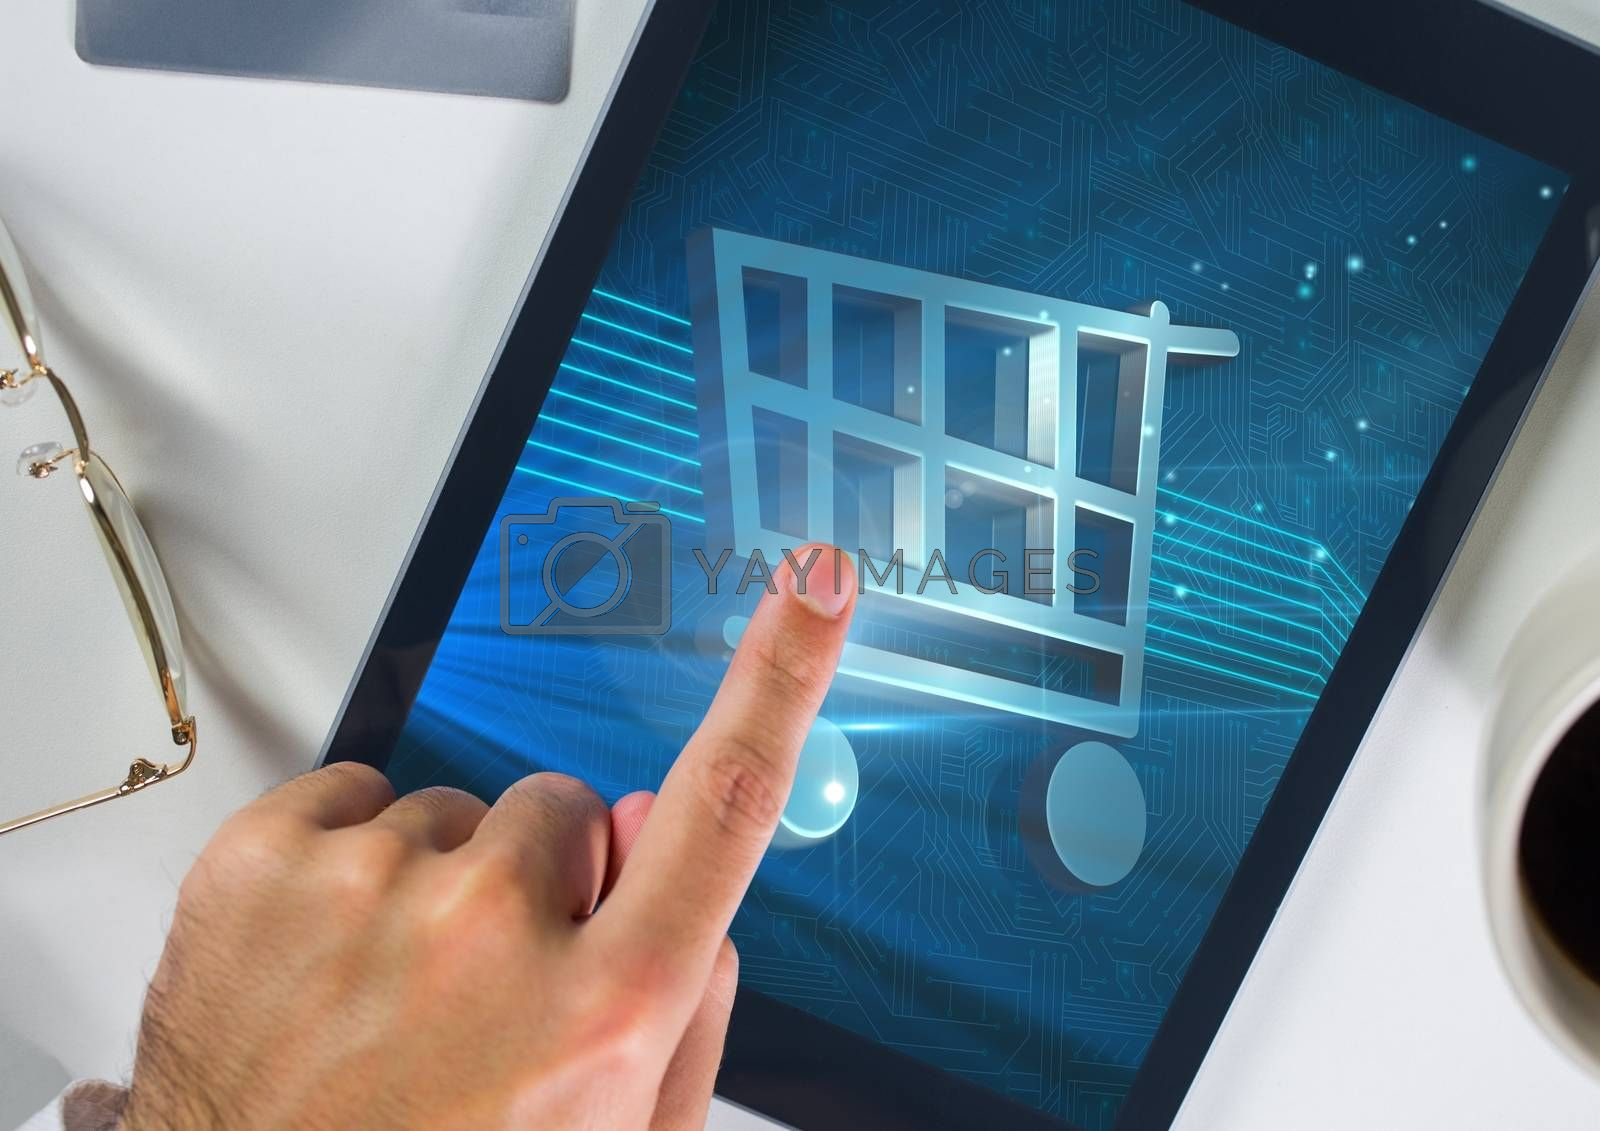 Conceptual image of man doing online shopping on digital tablet